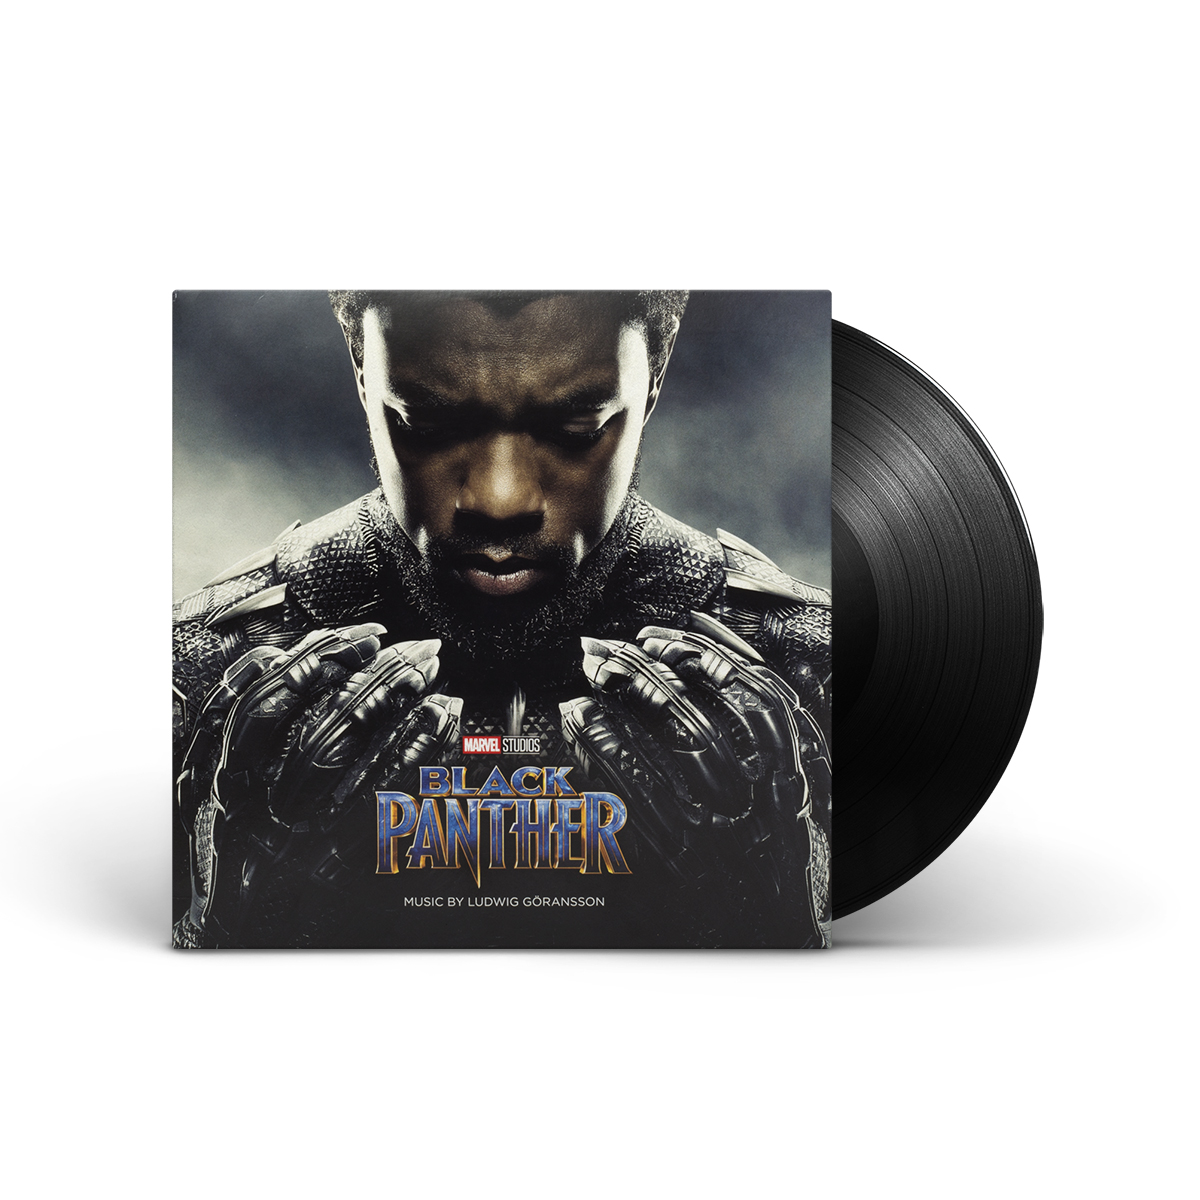 Black Panther Vinyl (Original Score)